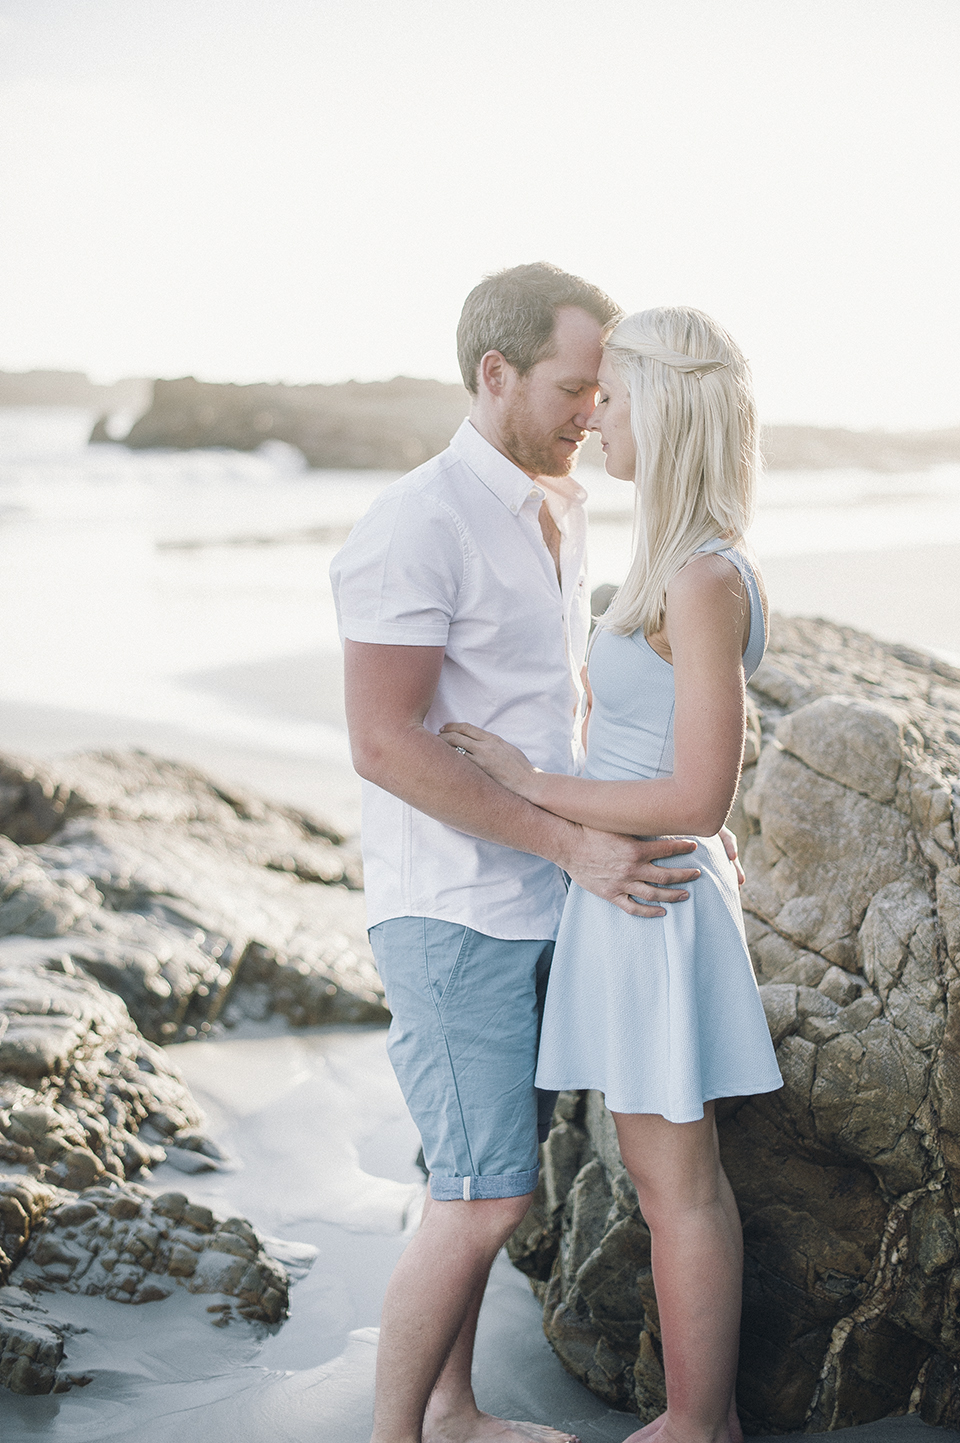 RyanParker_WeddingPhotographer_FineArt_CapeTown_EngagementSession_Hermanus_M&S_DSC_2501DSC_2479.jpg